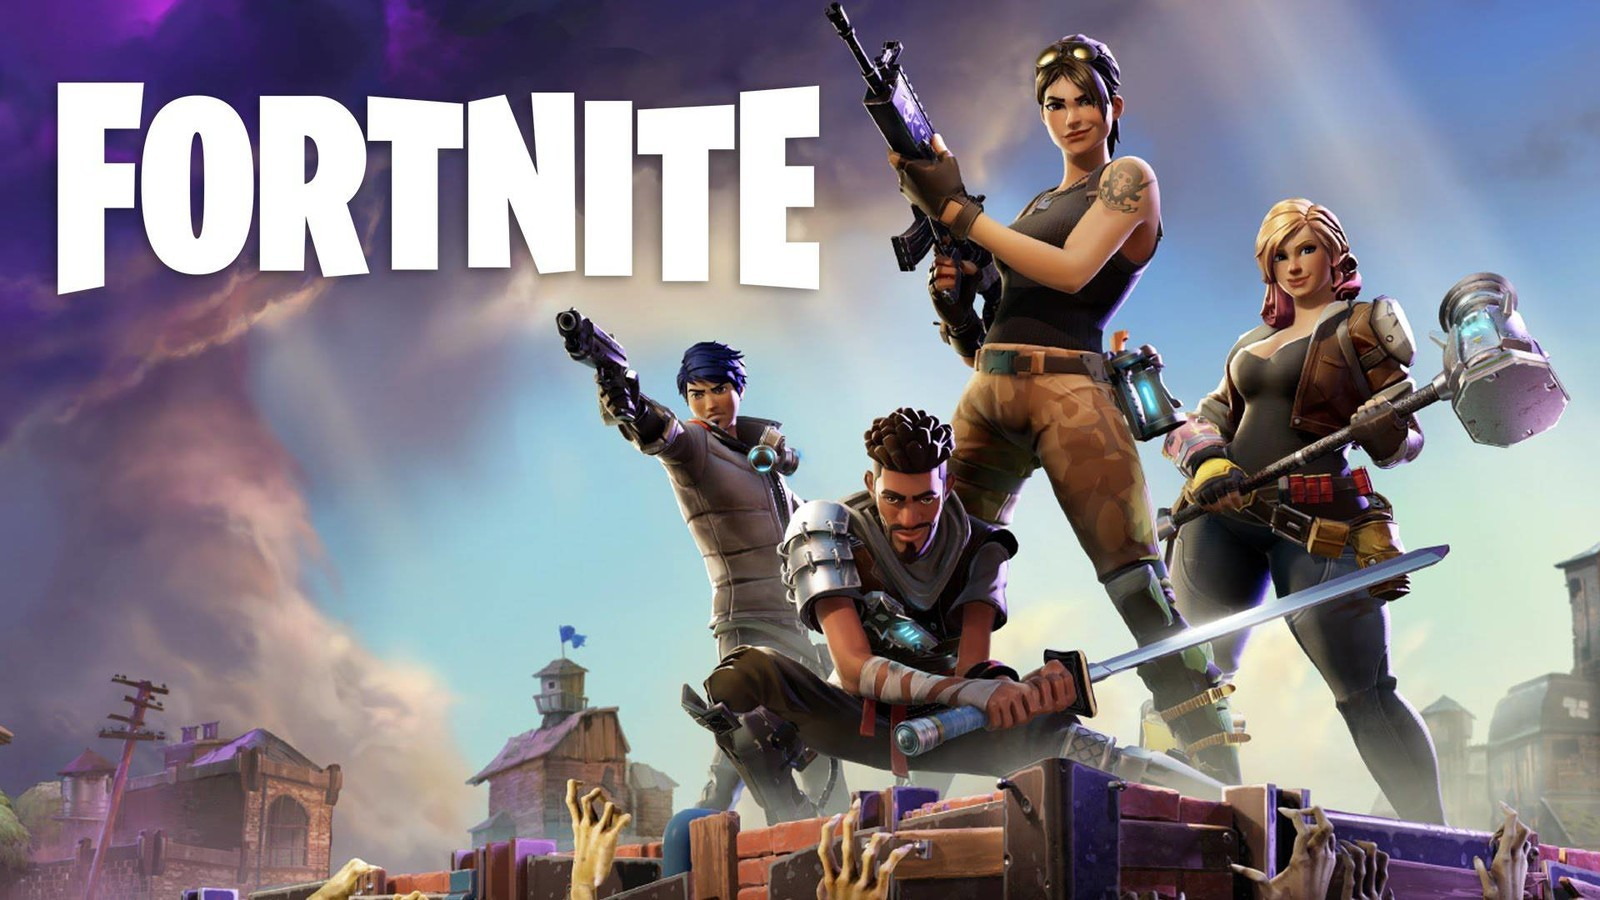 Inside Fortnite's Massive Data Analytics Pipeline